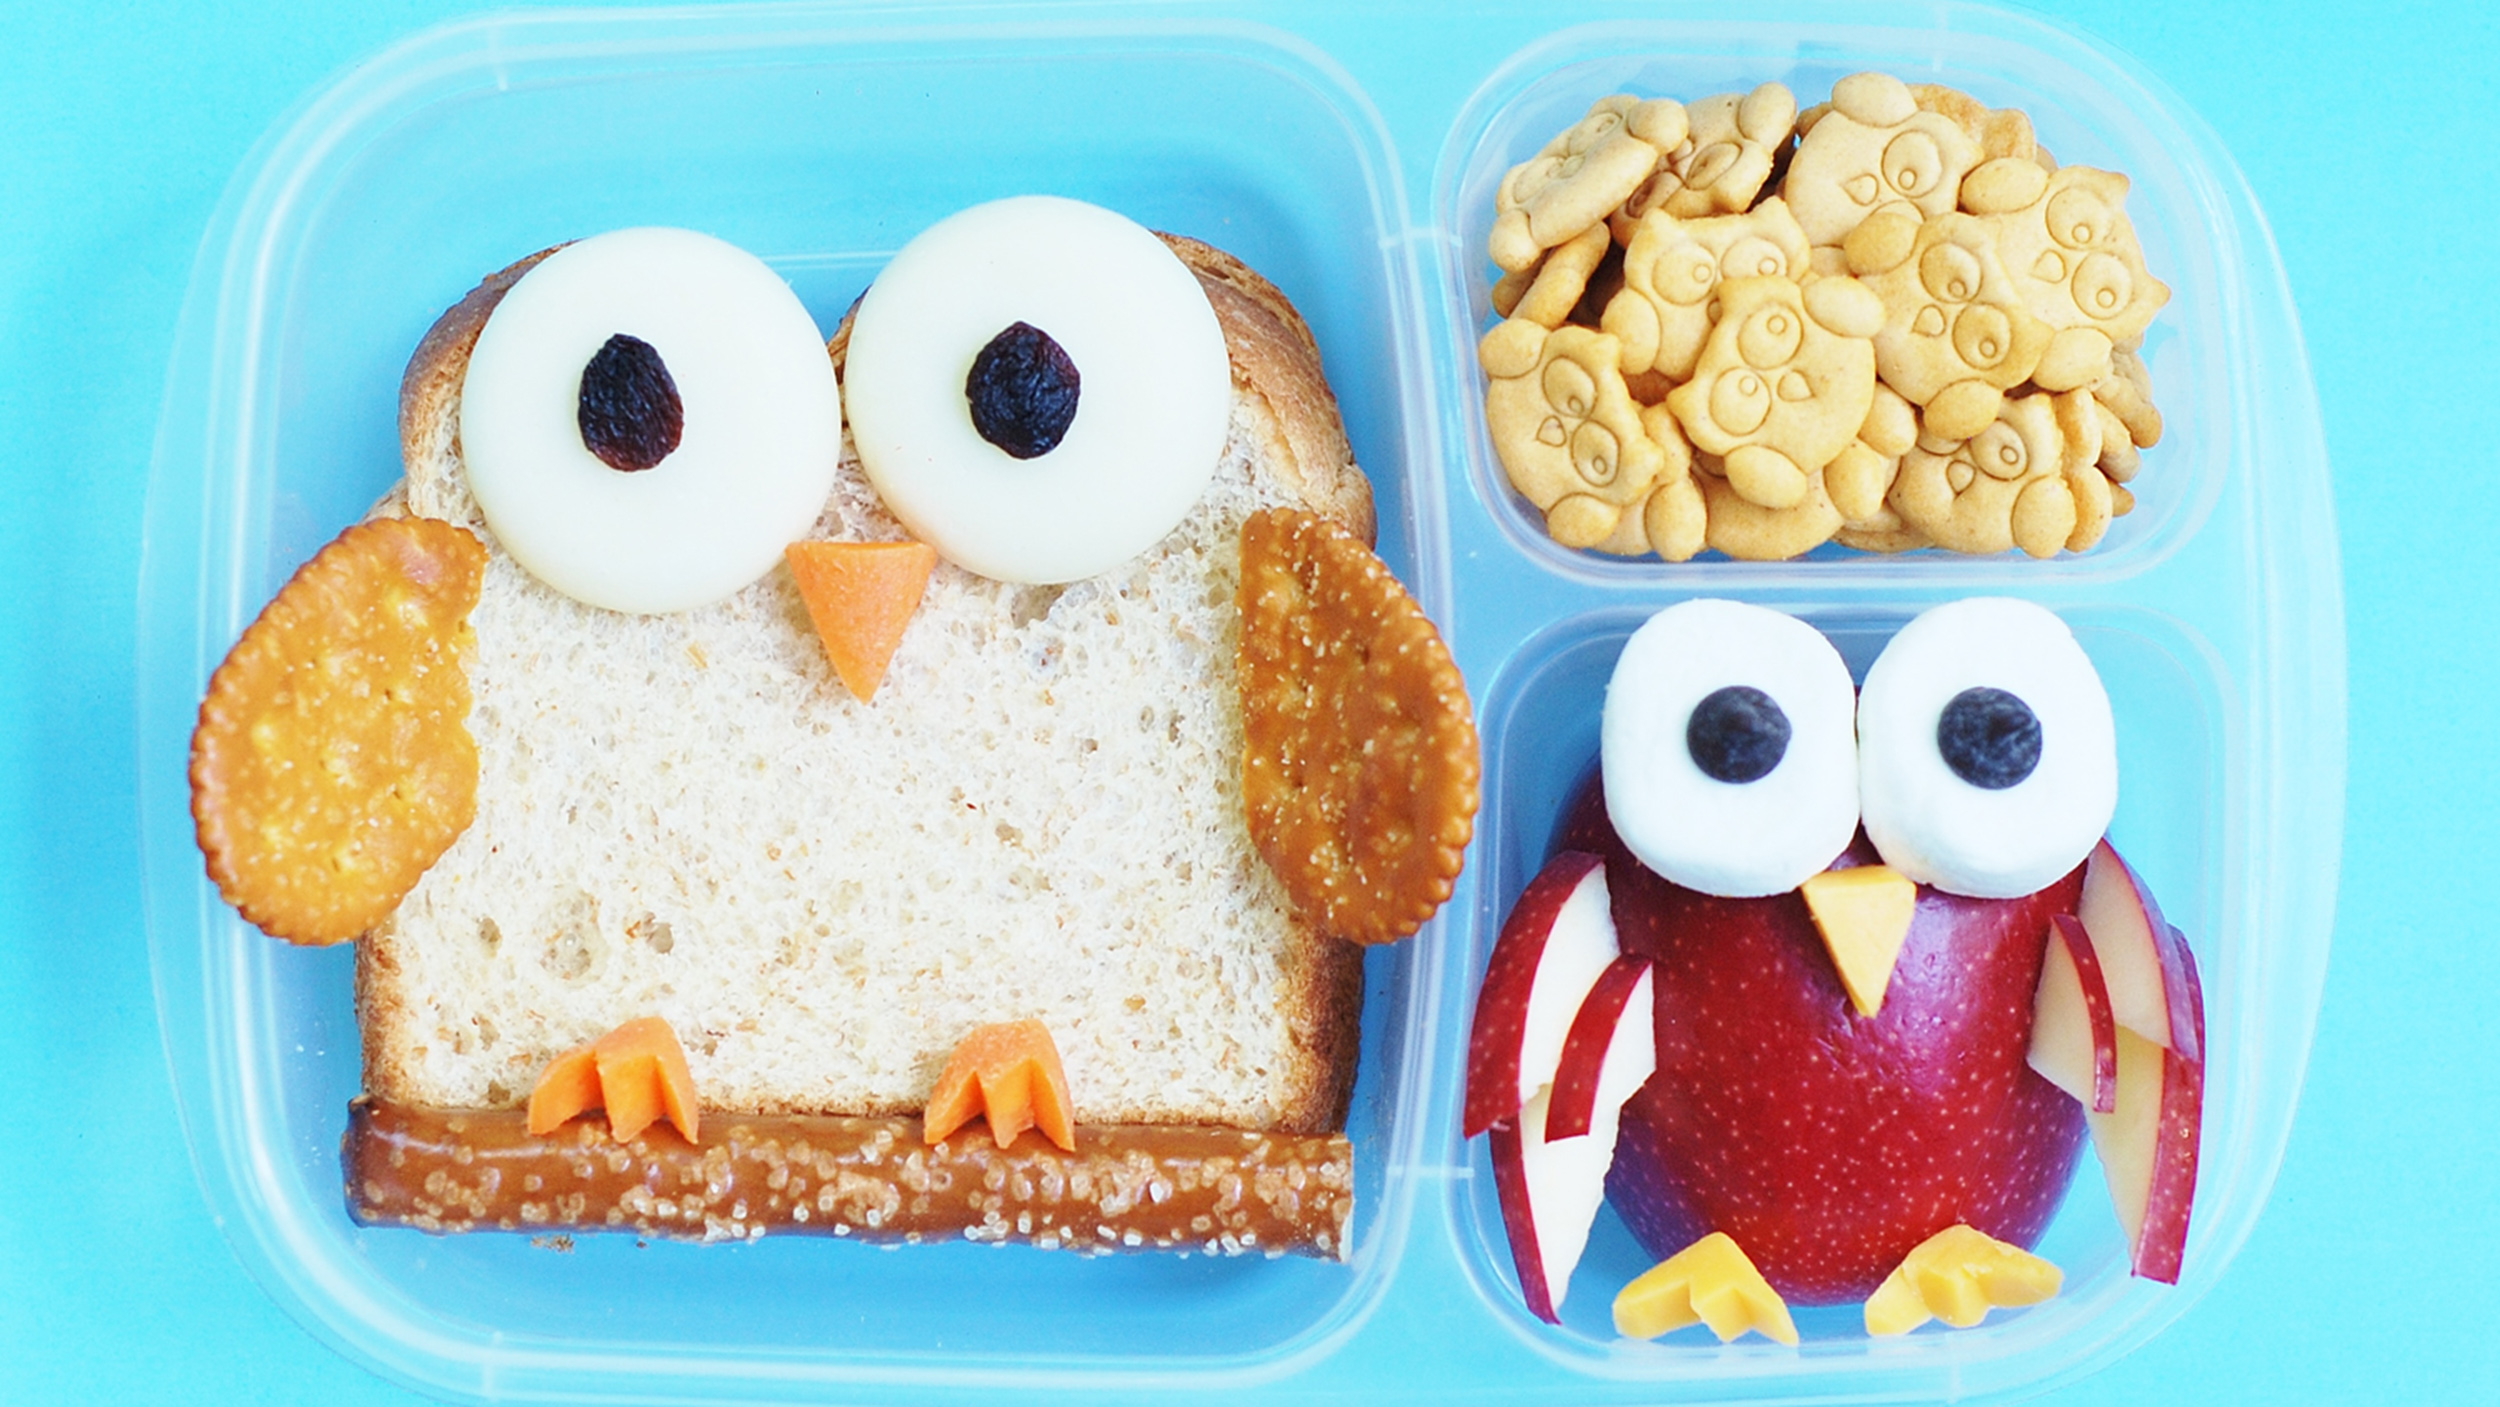 sc 1 st  Today Show & 5 cute and creative bento box lunch ideas for kids - TODAY.com Aboutintivar.Com